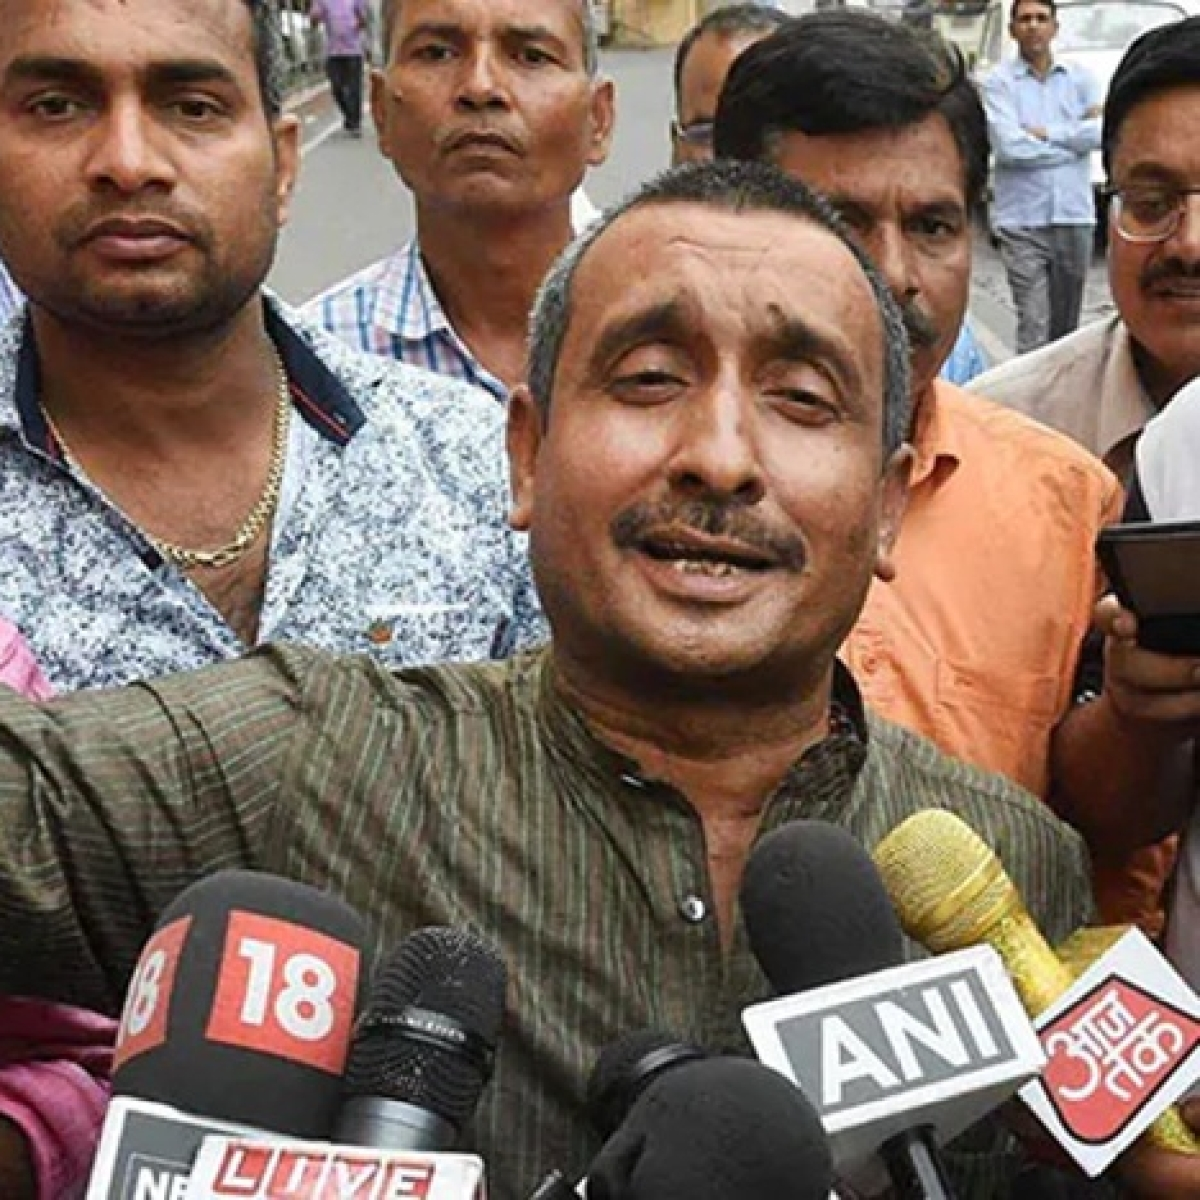 Unnao rape victim accident case: FIR against Kuldeep Sengar, and other shocking twists and turns